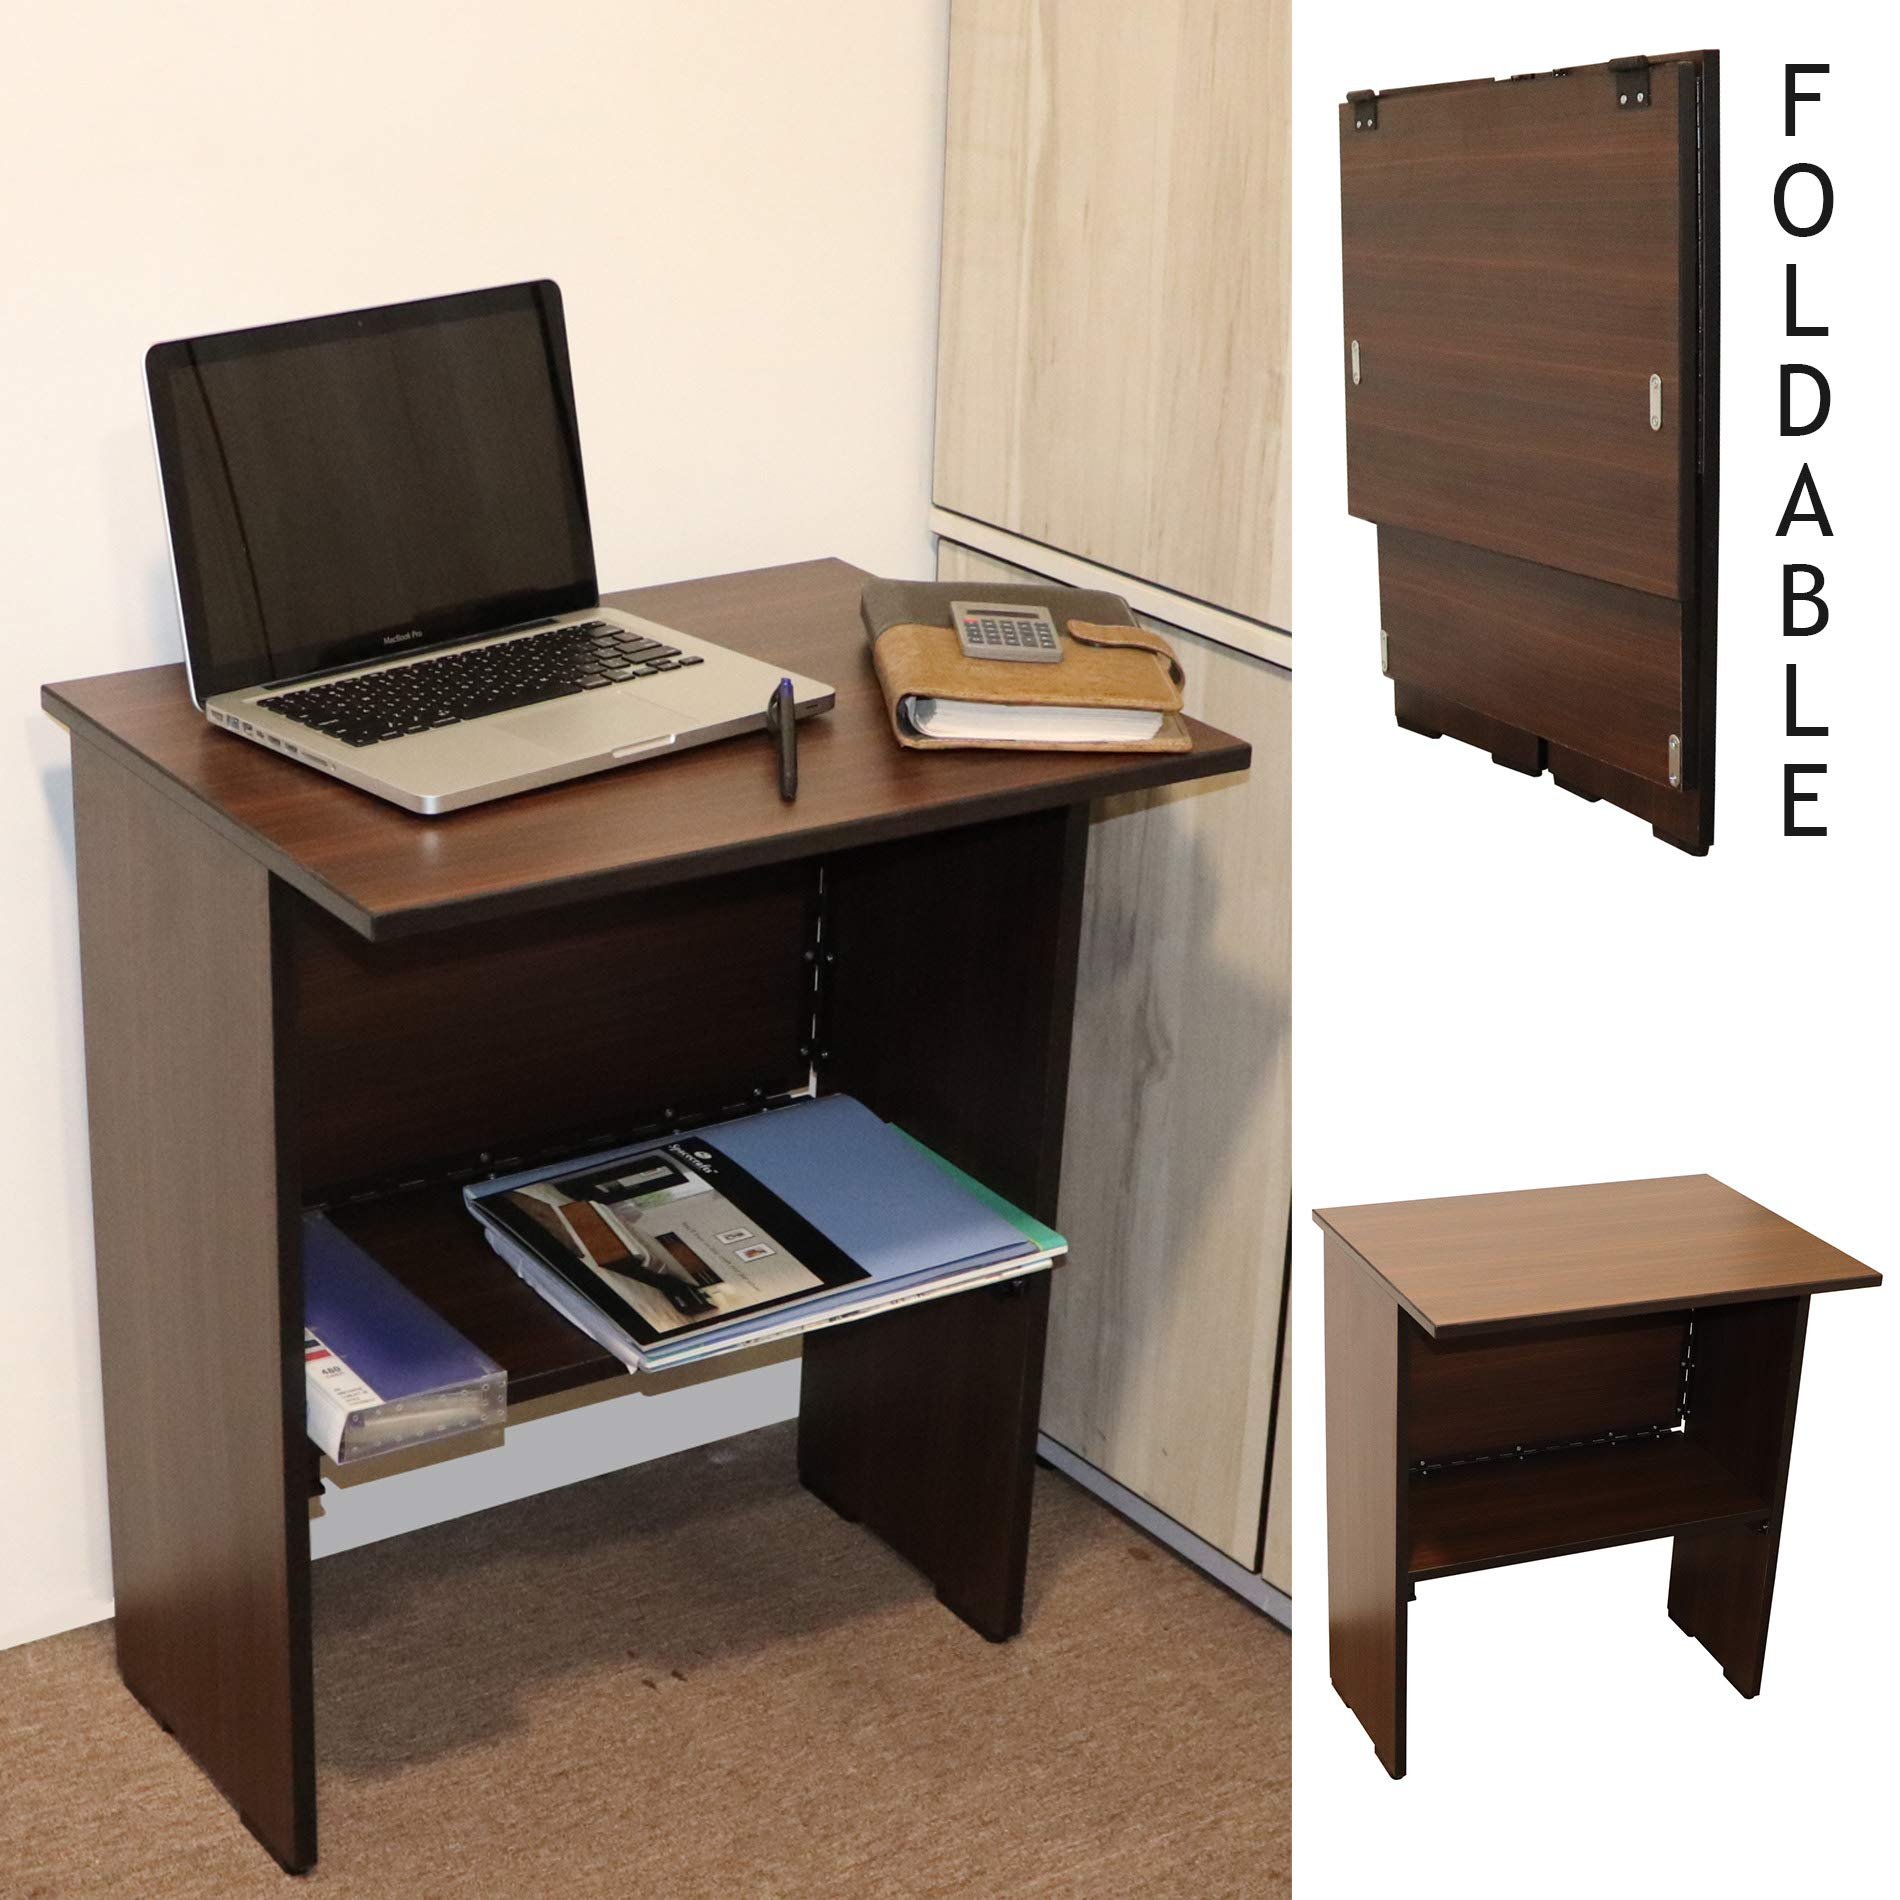 Spacecrafts Wooden Folding Computer Table Mate for Laptop Study Office Desk (Standard, Brown) product image